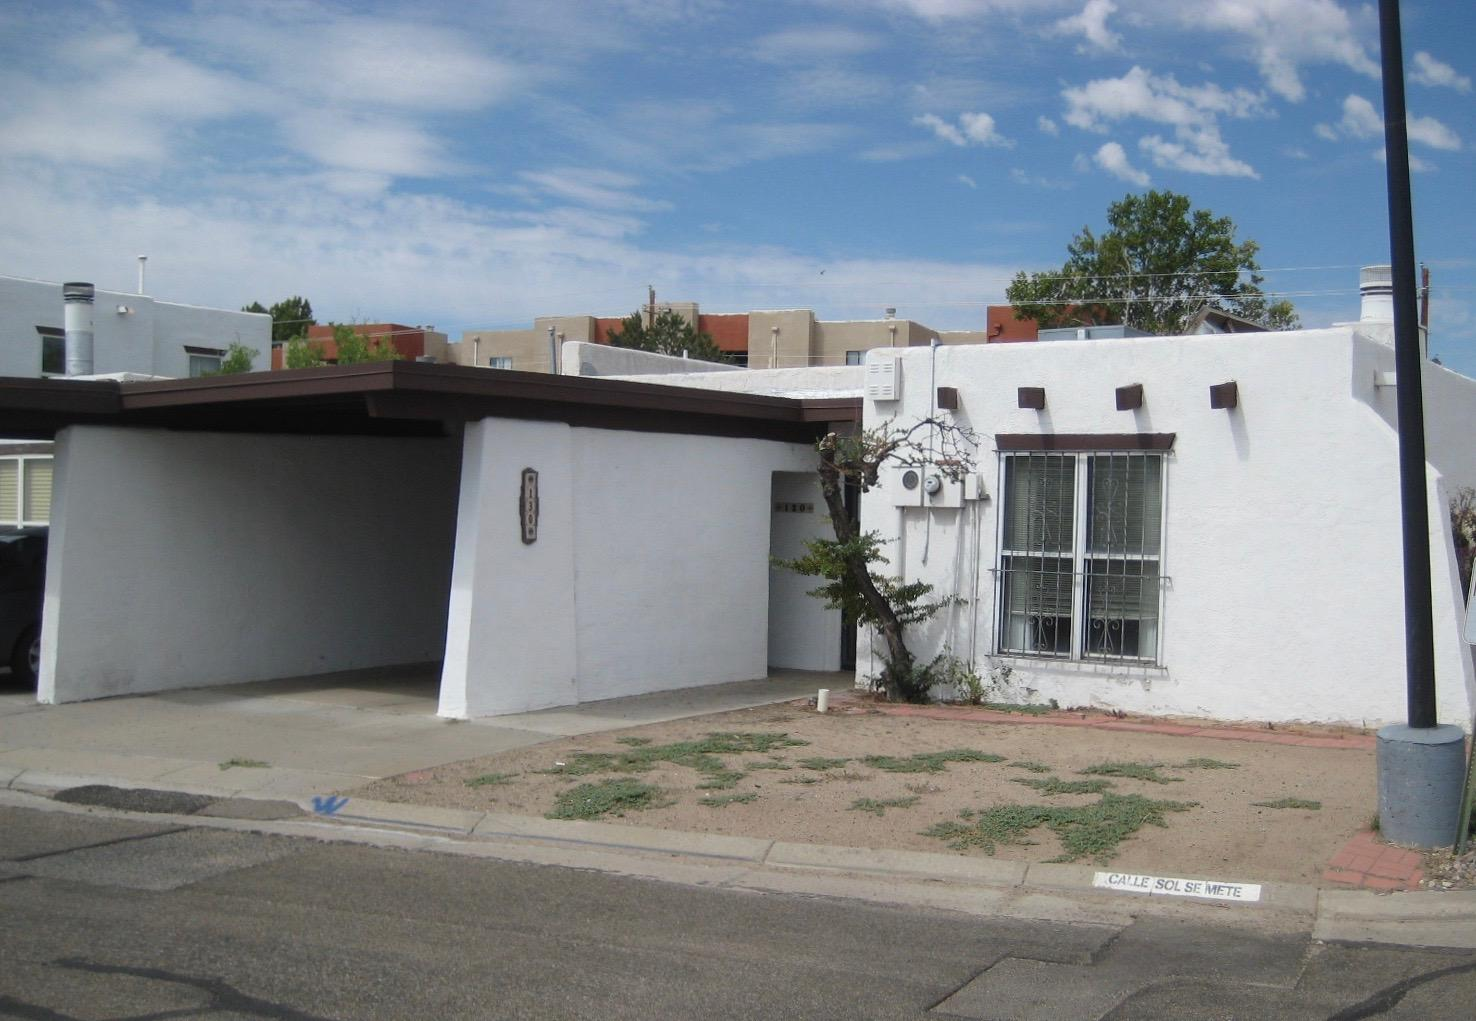 This Corner lot Town Home features 2 bedrooms, 1 3/4 baths and is approximately 1100 square feet. It's the Perfect Opportunity to own a home in one of Albuquerque's hidden gems! Villa De Paz Town homes offers affordable living in a very central location, only moments for every conceivable service!!   Needs a Little TLC. The complex has a Community pool and play ground for kids of all ages! ***No warranties or guarantees expressed or implied! Buyer to pay for their own Inspections for Buyers knowledge only!*